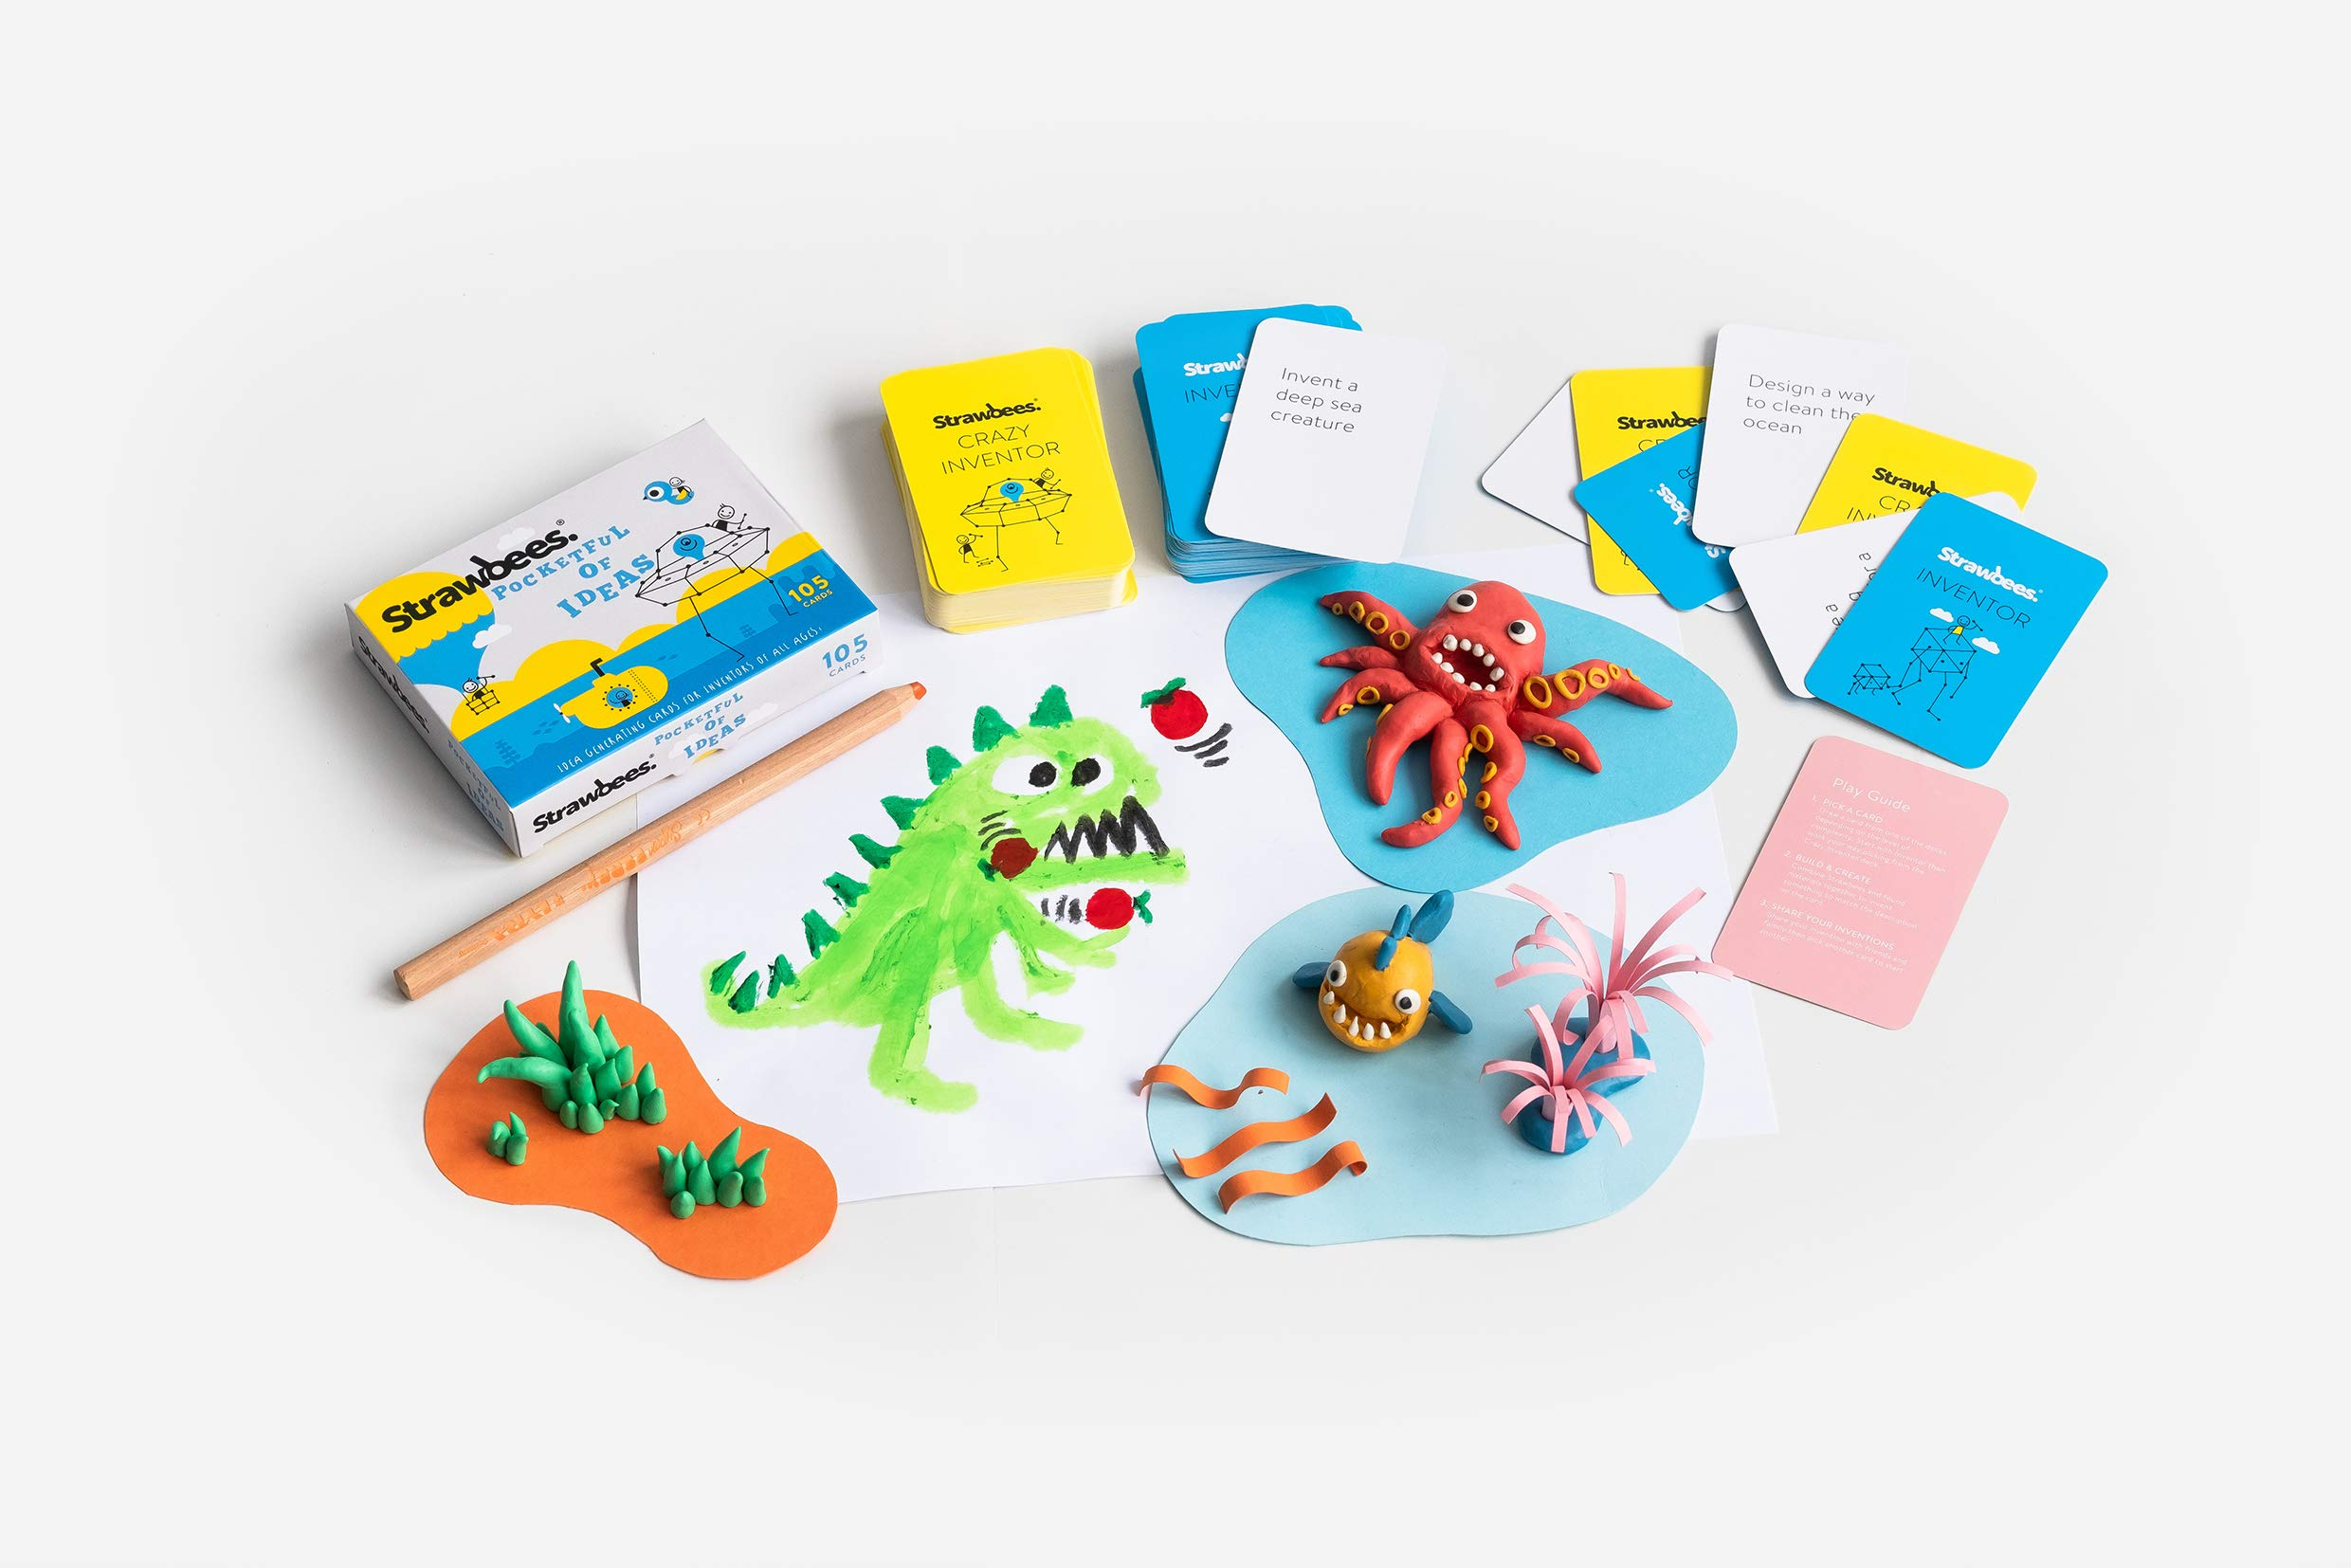 Strawbees STEAM School Kit | 4096 Color-Coded Pieces | Perfect for a Classroom by Strawbees (Image #4)